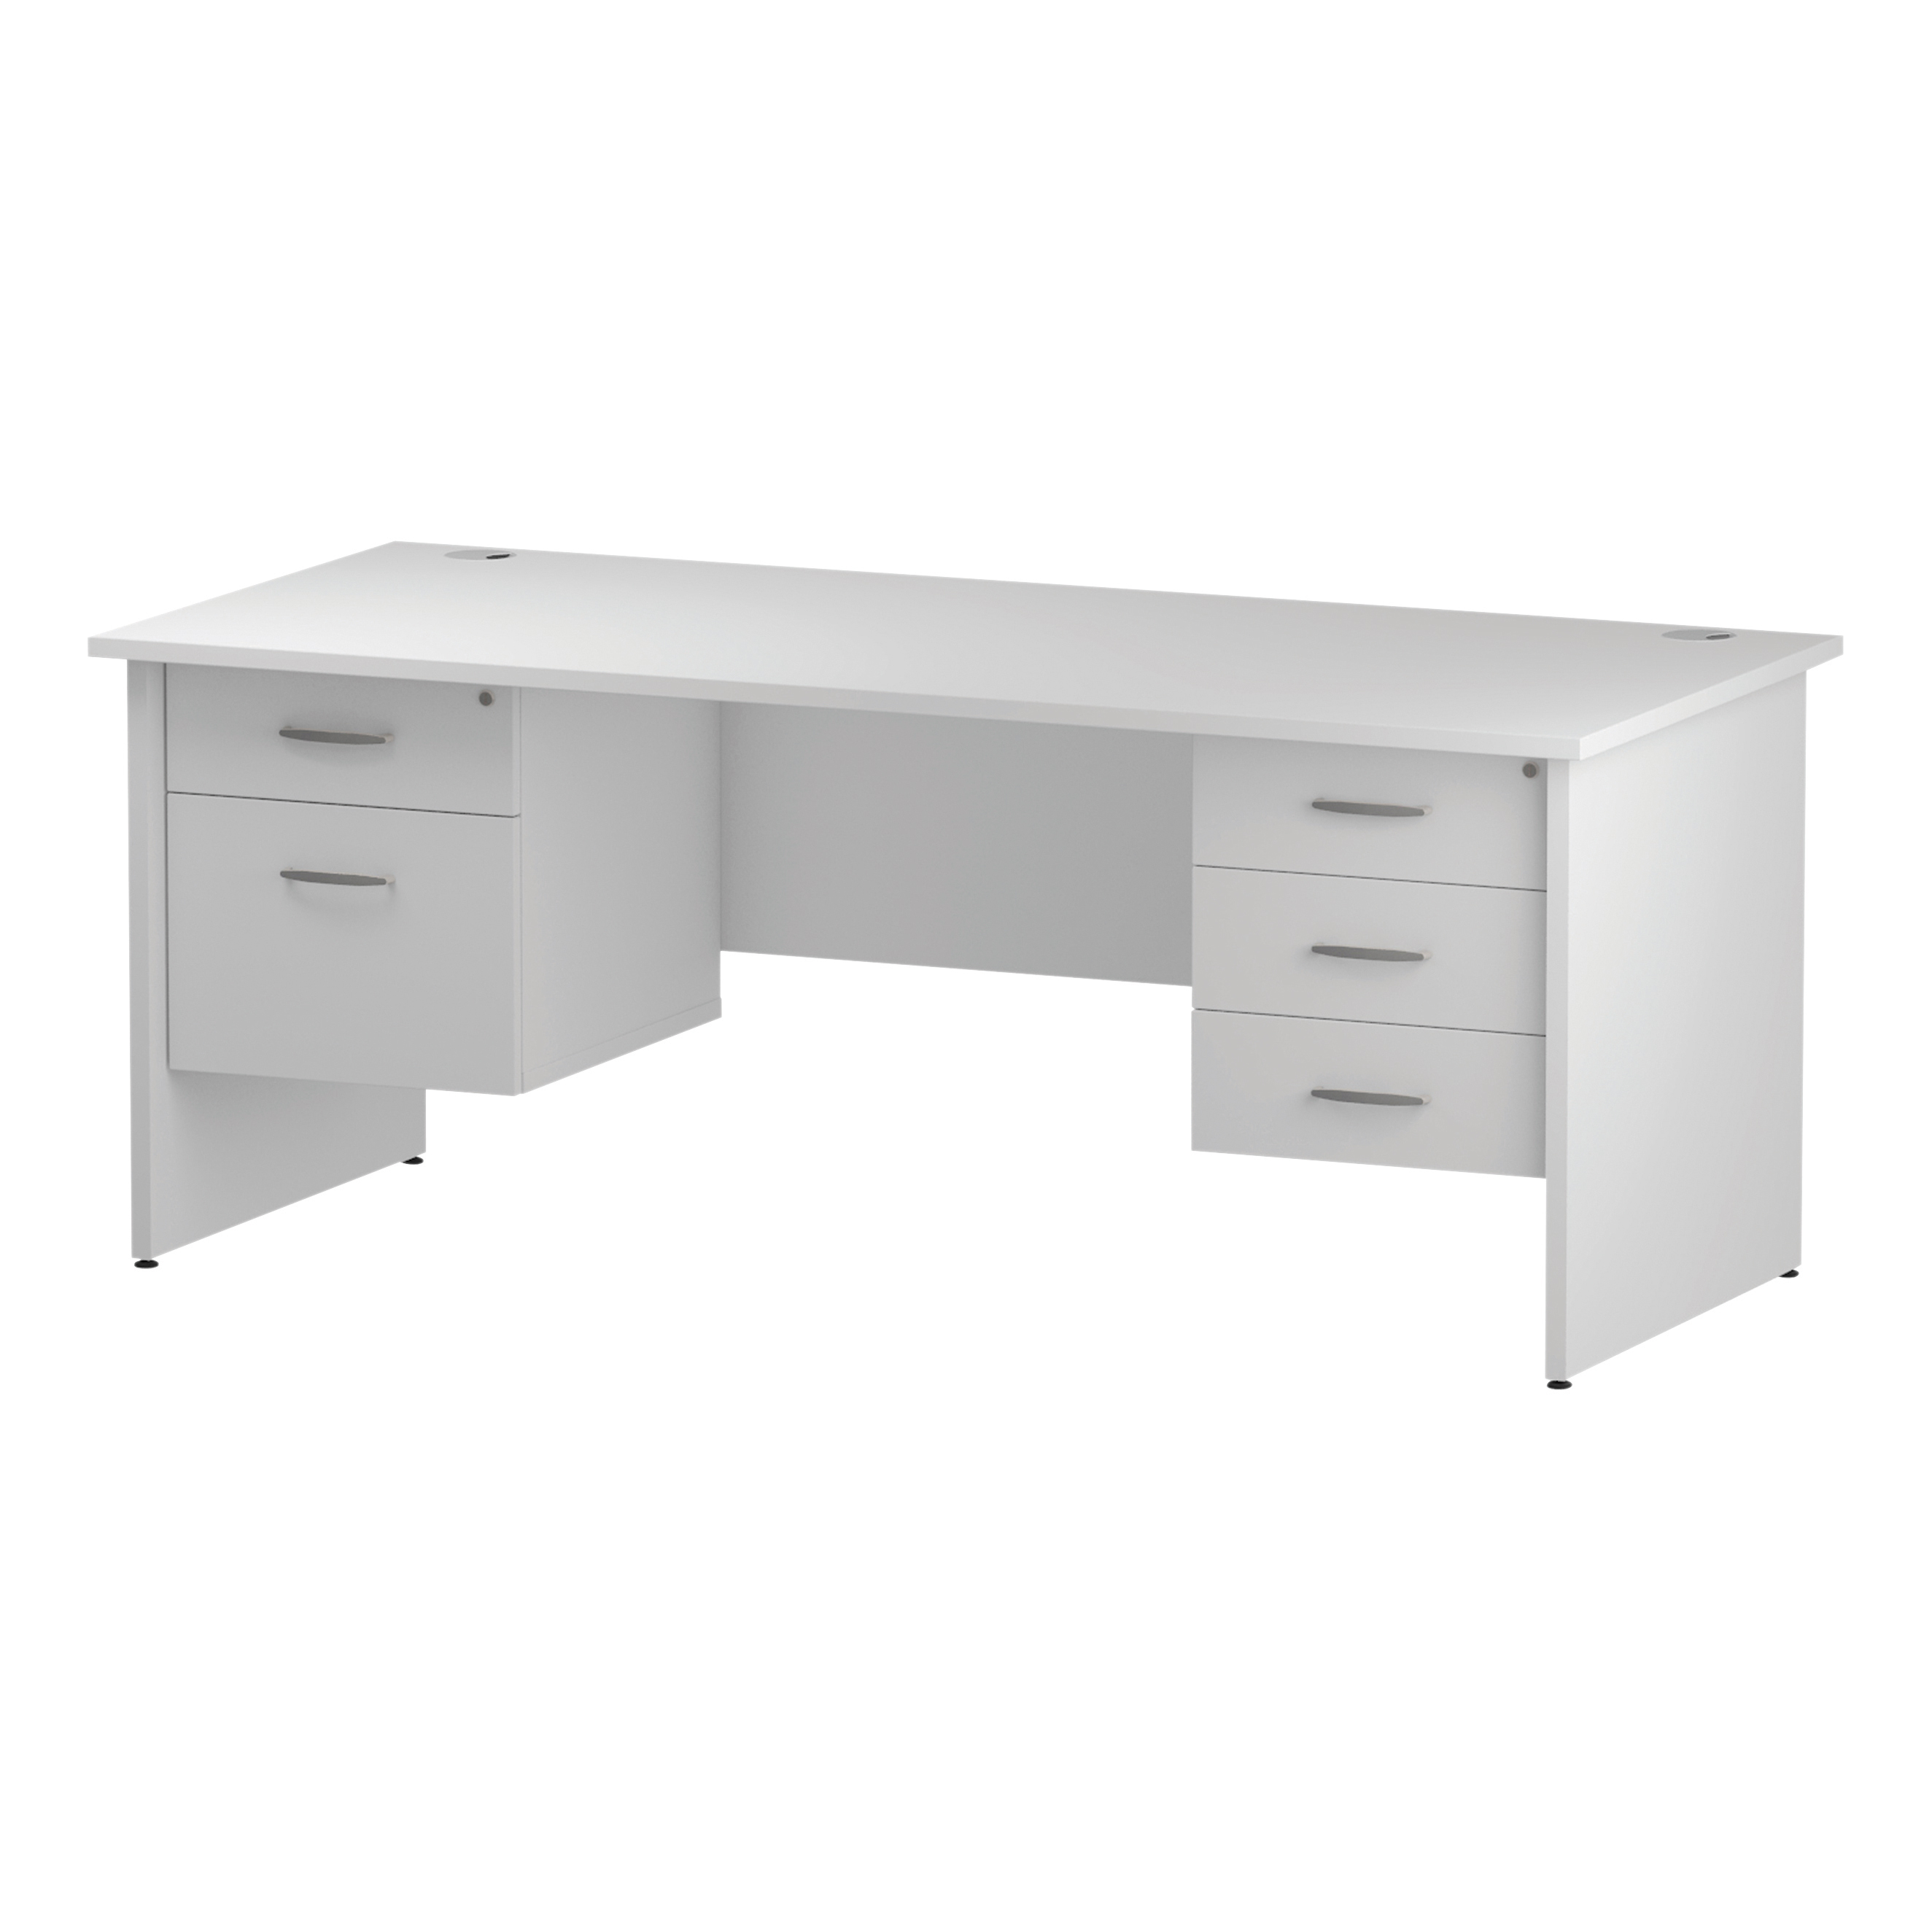 Trexus Rectangular Desk Panel End Leg 1800x800mm Double Fixed Pedestal 2&3 Drawers White Ref I002269